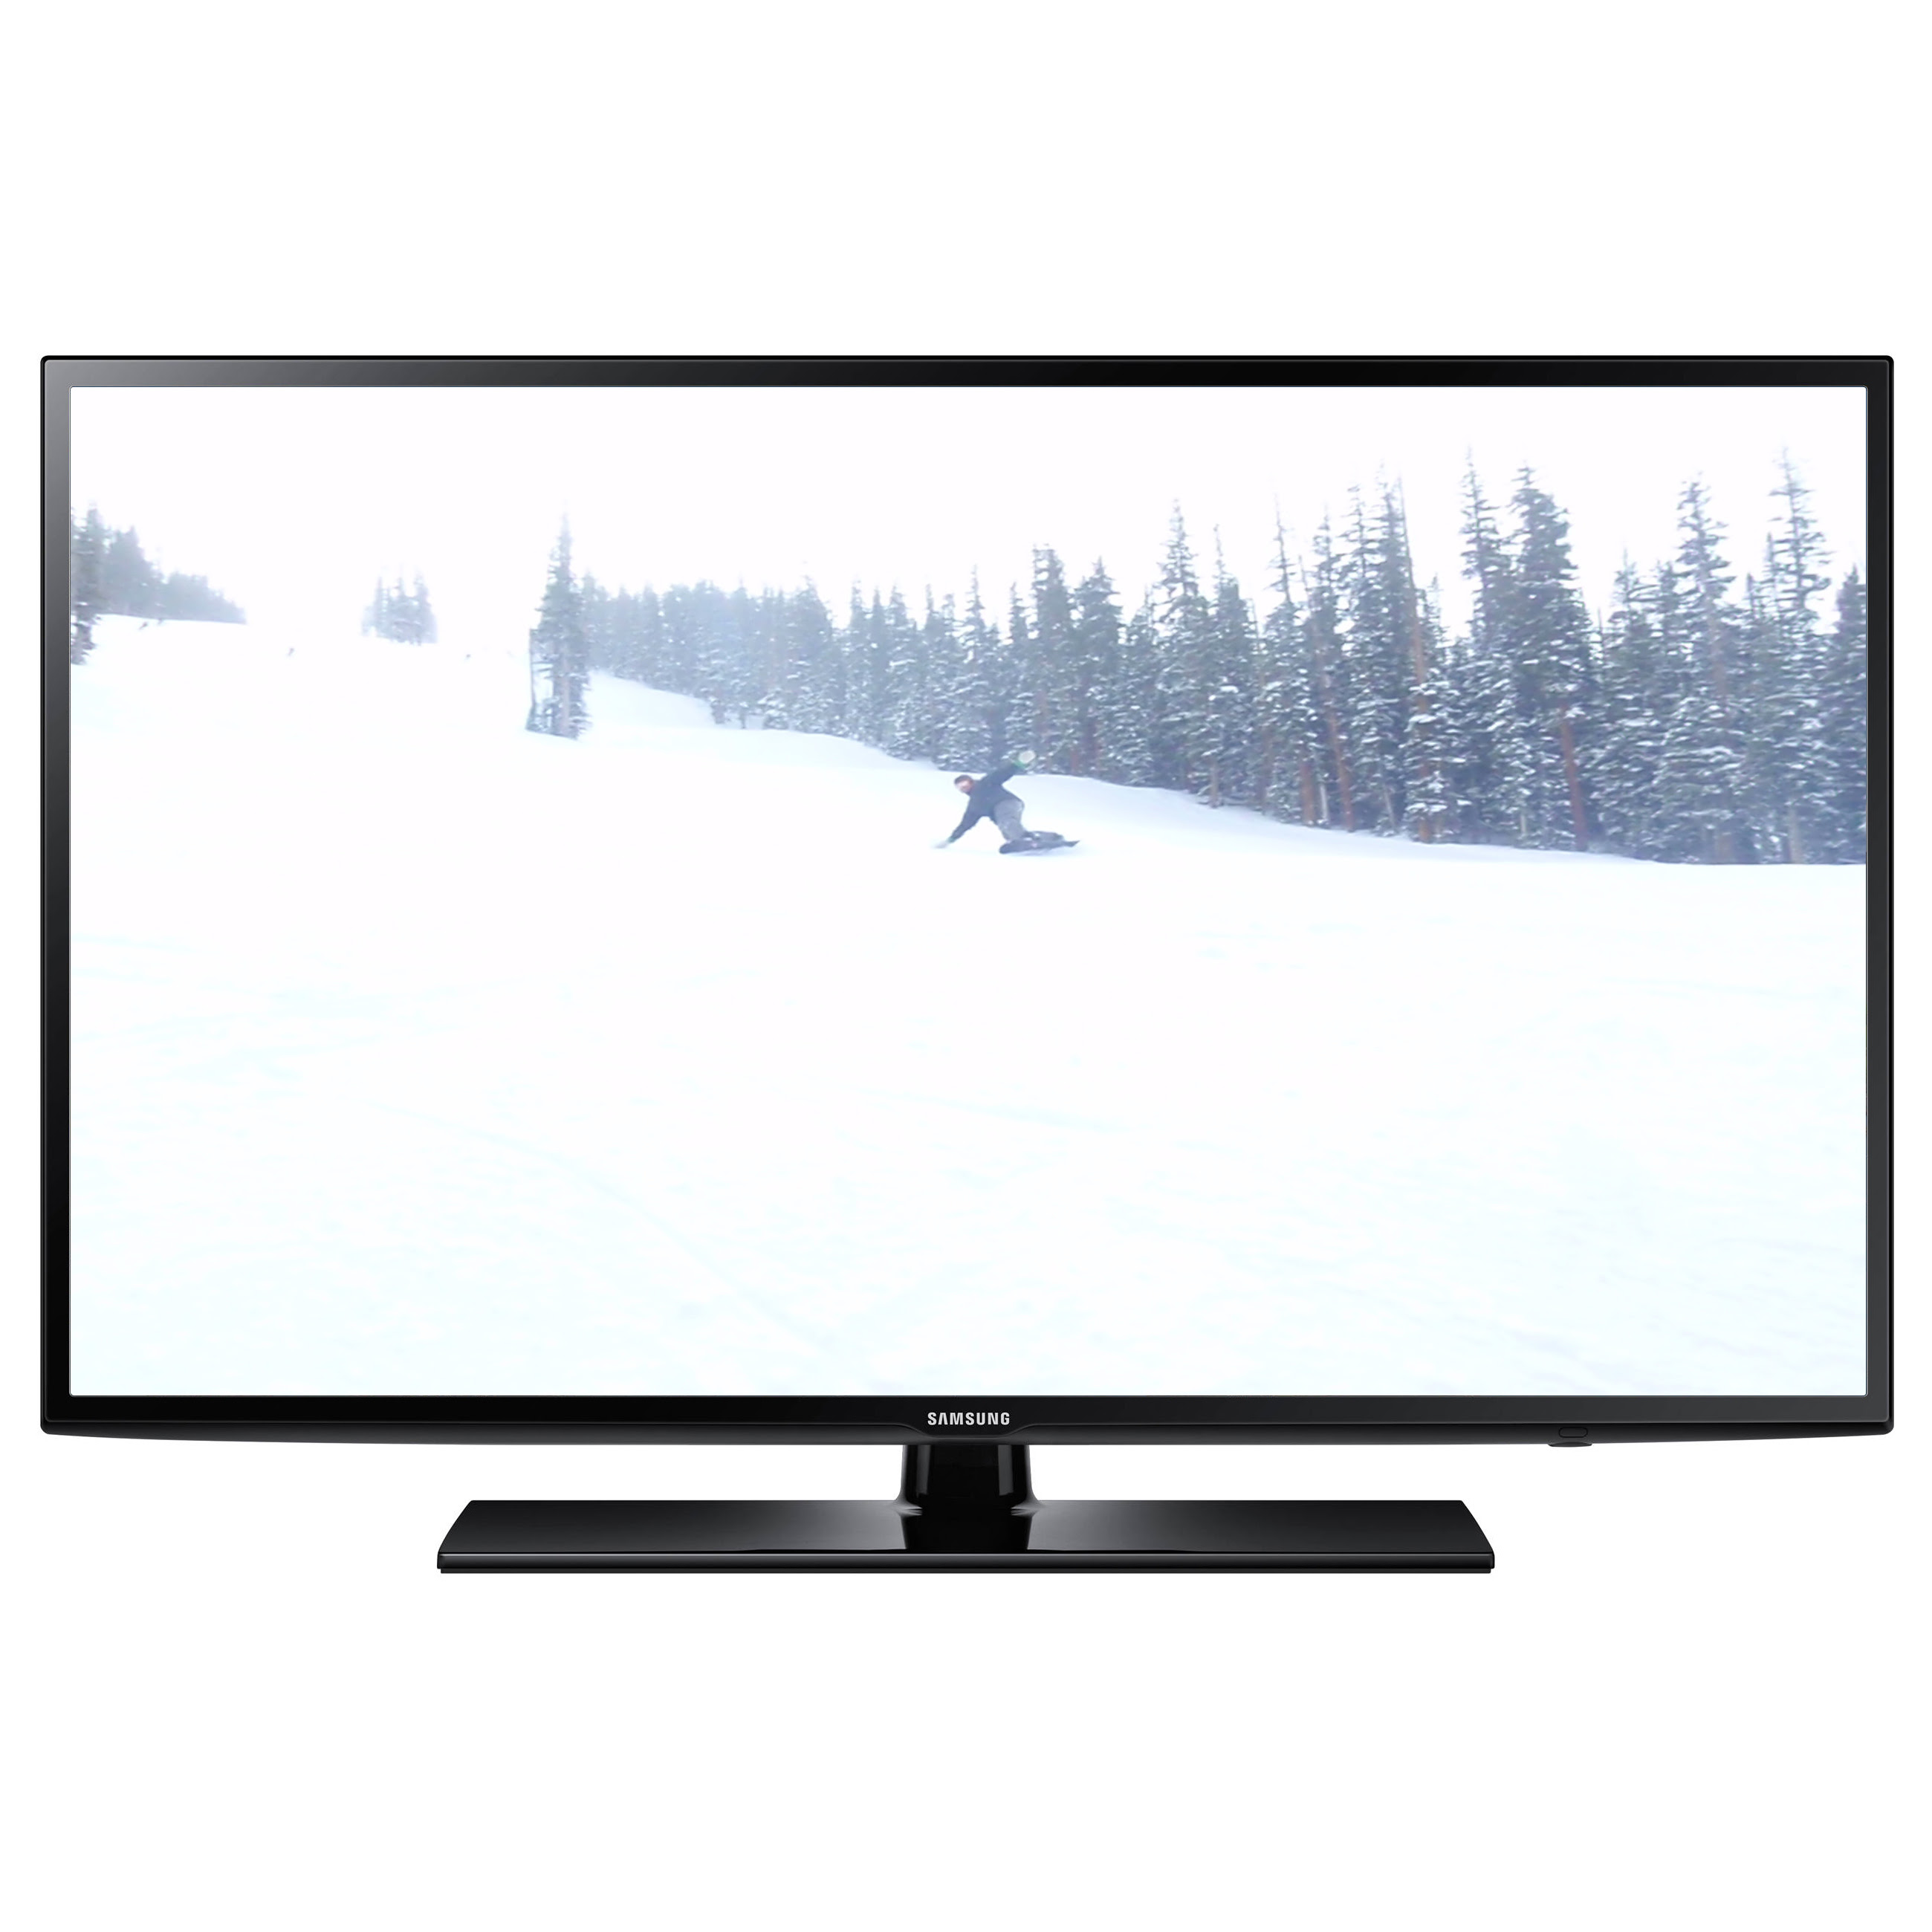 Samsung Refurbished 40 Class 1080p LED Smart Hdtv - UN40J6200